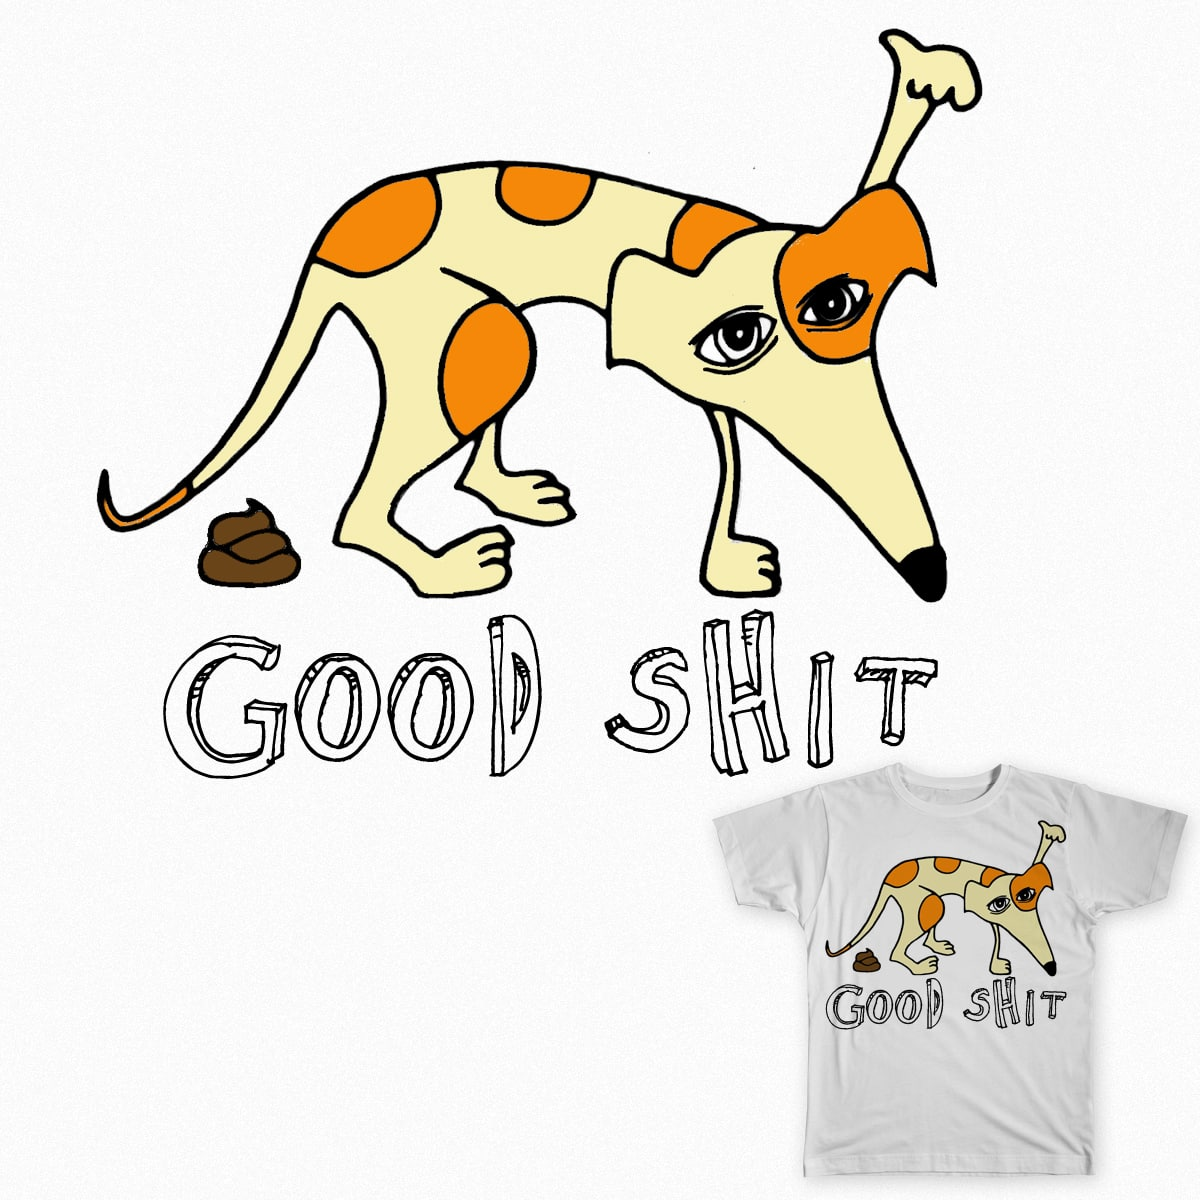 good shit by andresbruno on Threadless